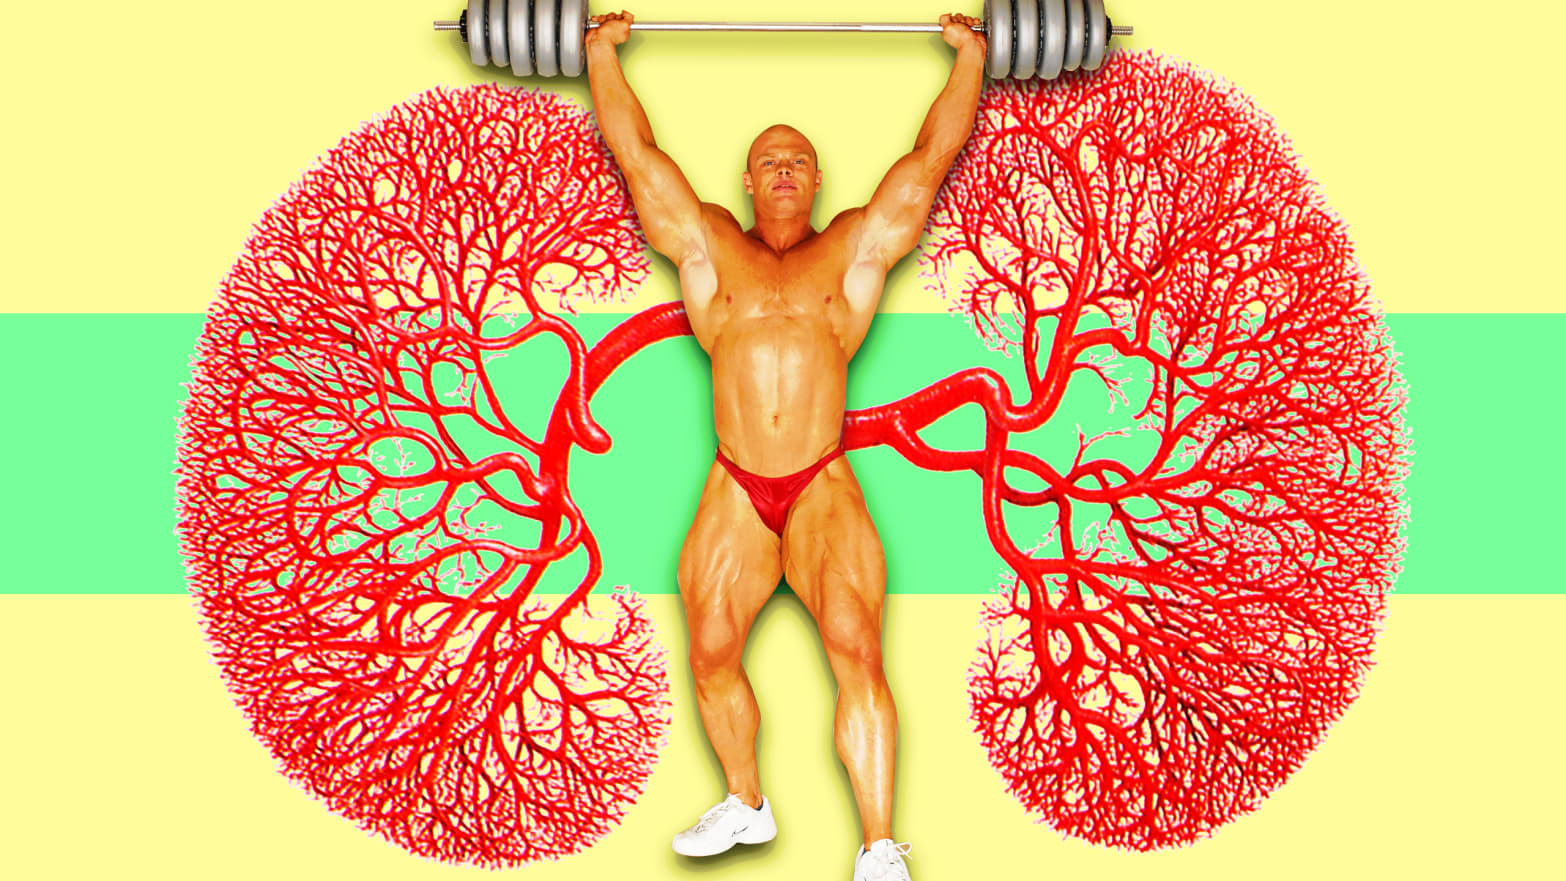 body builder in red underwear and white sneakers in front of kidney image nephrons rhabdo elite ultramarathon